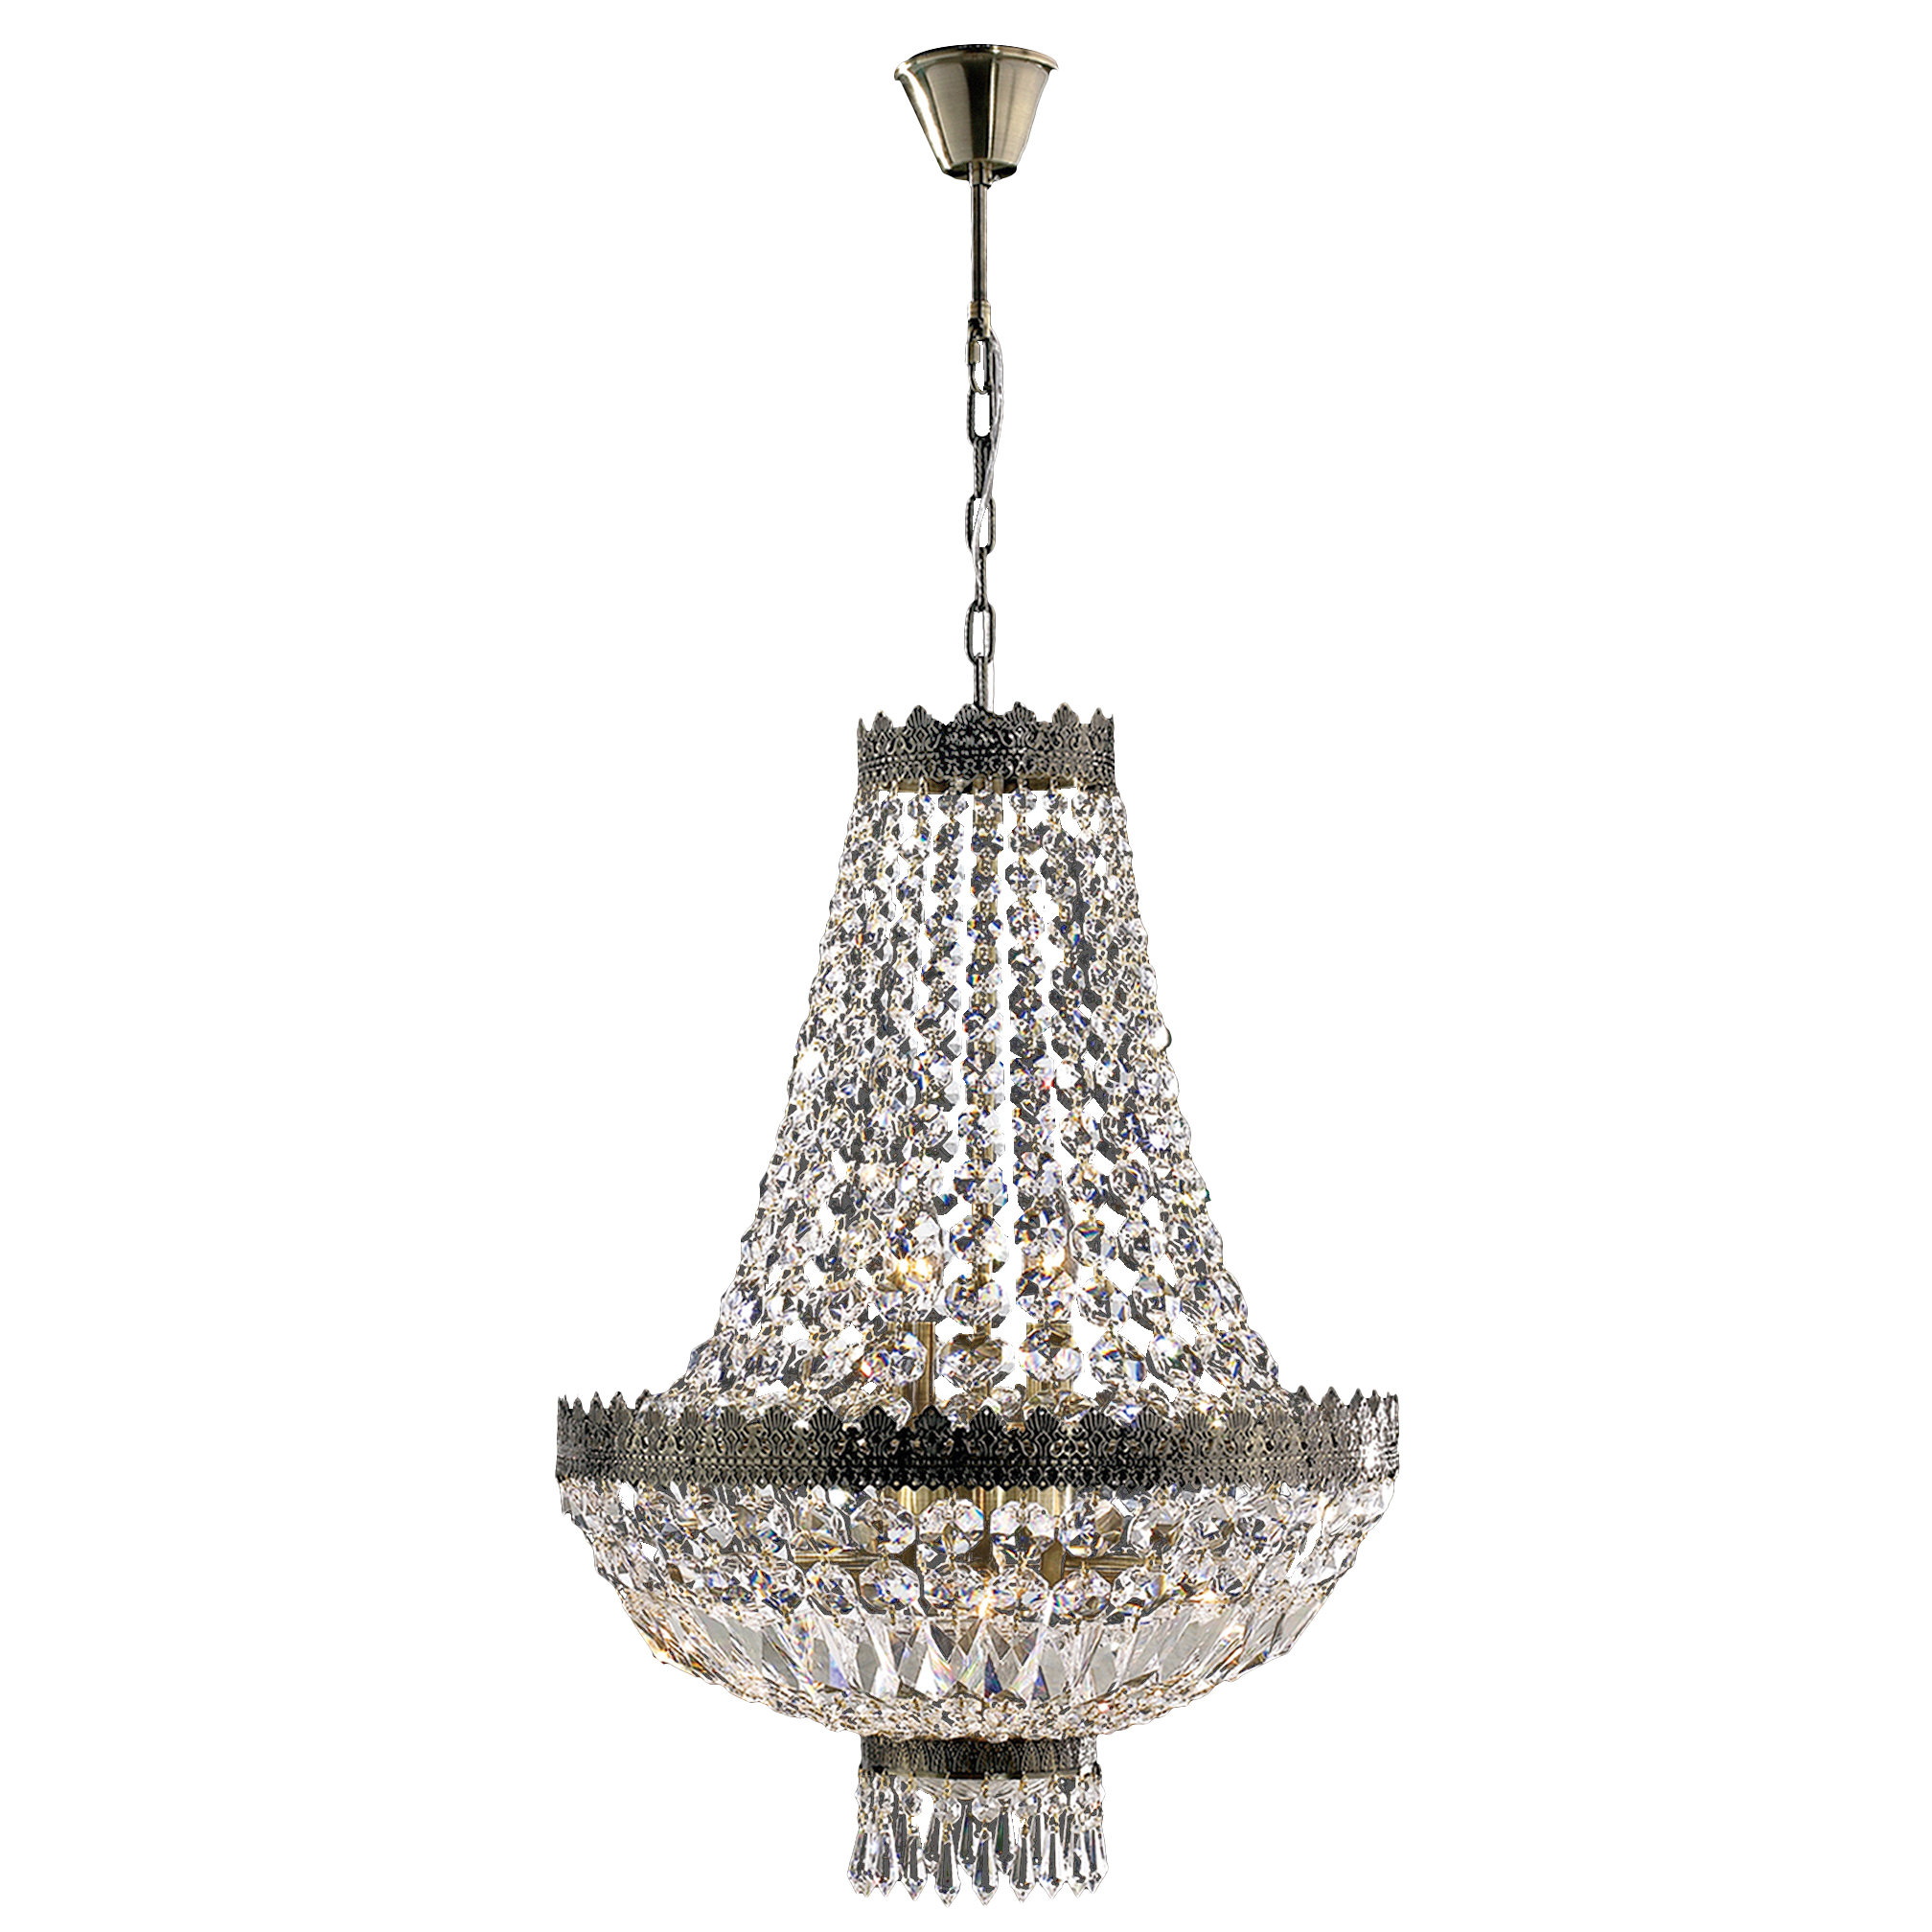 Brimstone 1 Tier 6-Light Empire Chandelier with Spokane 1-Light Single Urn Pendants (Image 8 of 30)